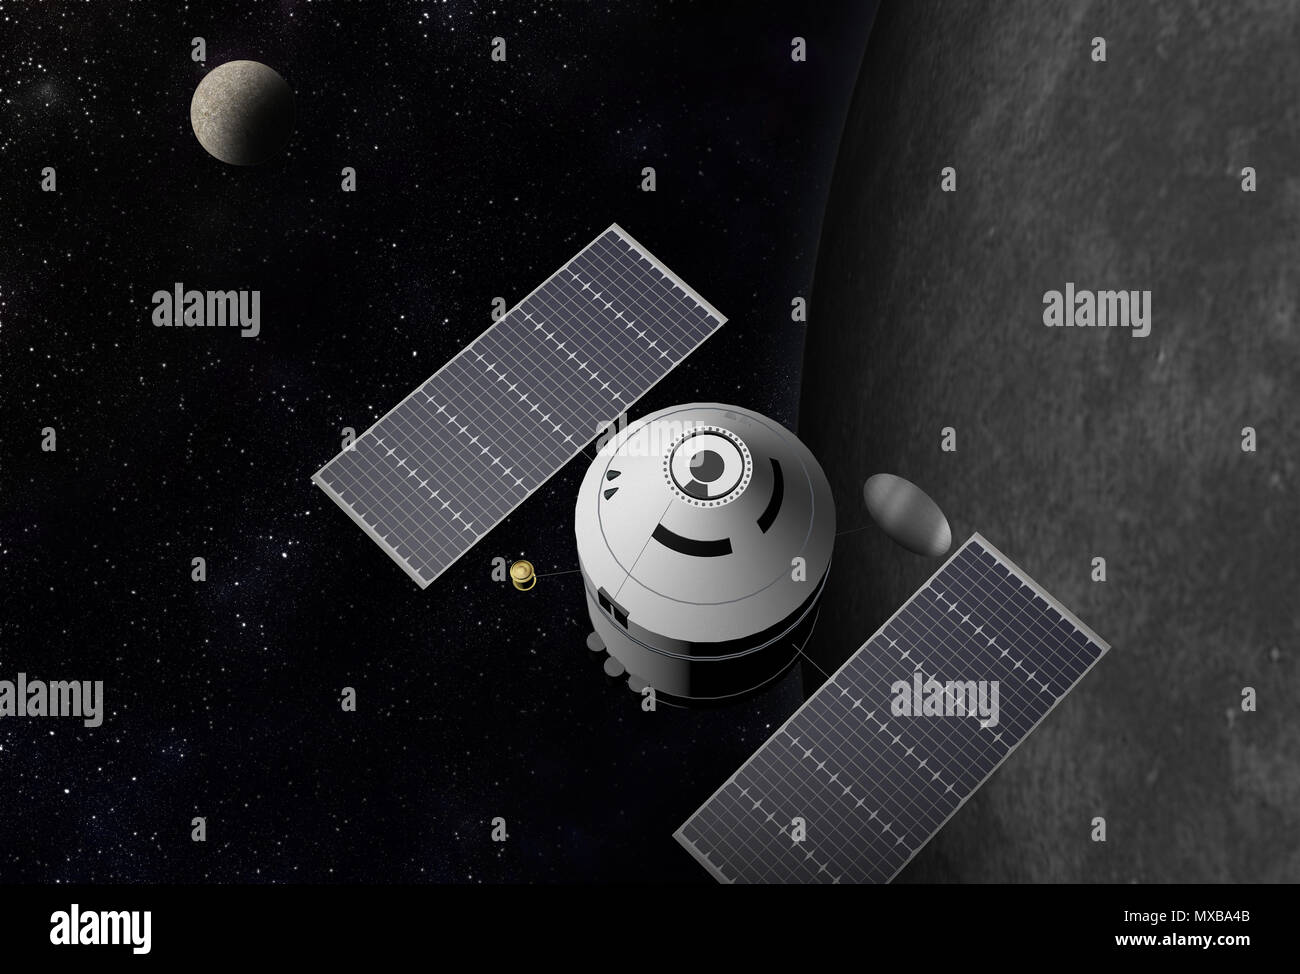 Spacecraft flying to vibrant outer space with stars, nebula and planets. - Stock Image